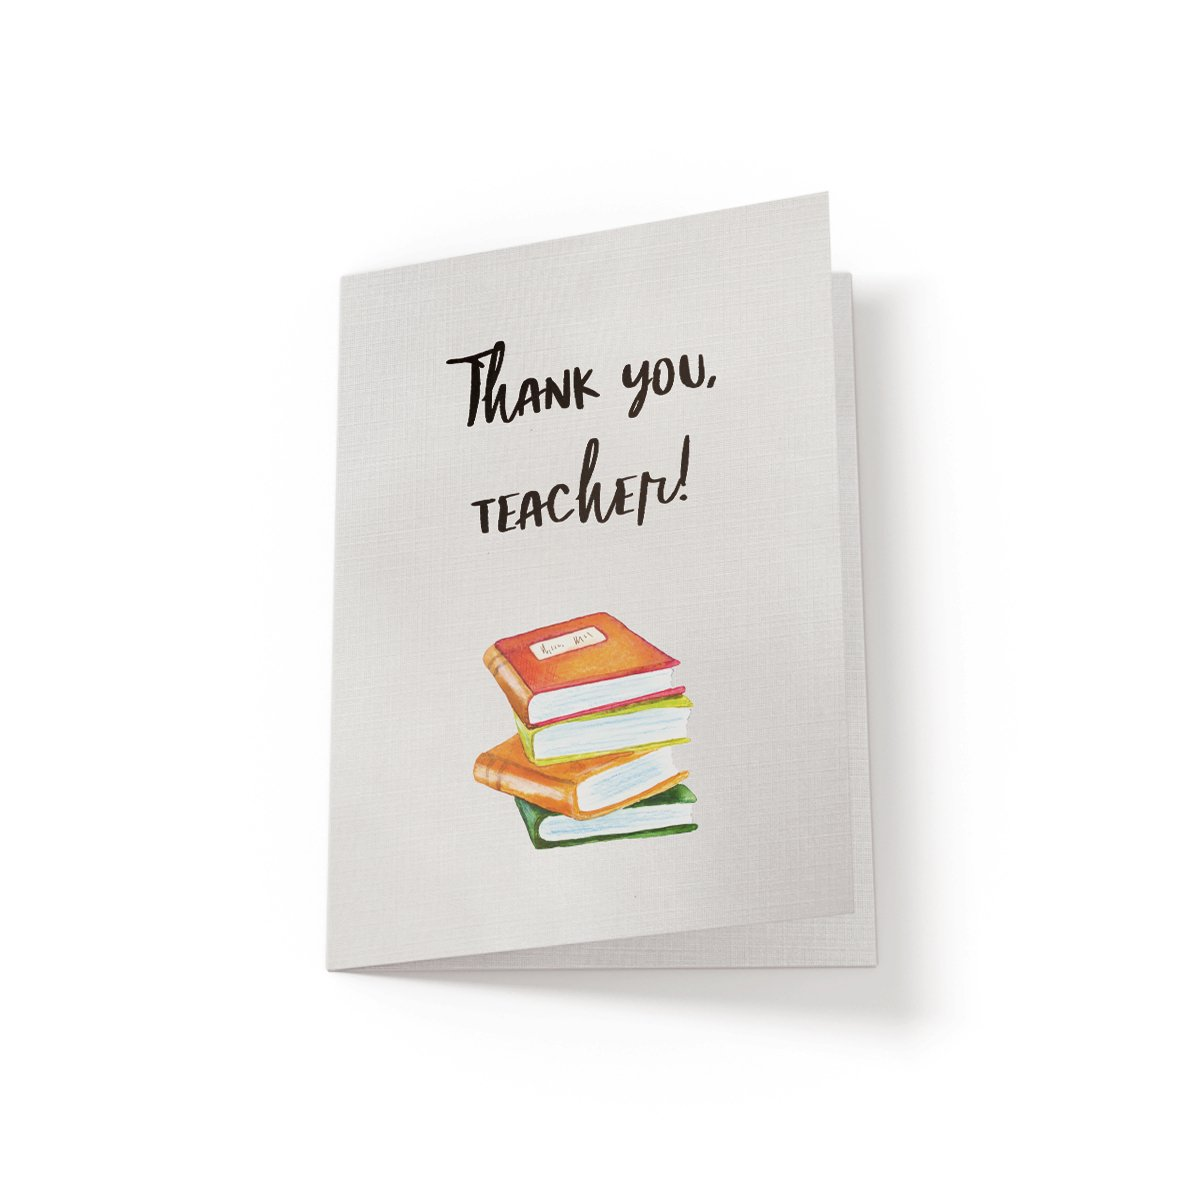 Thank You, Teacher - Greeting Card - Netties Expressions